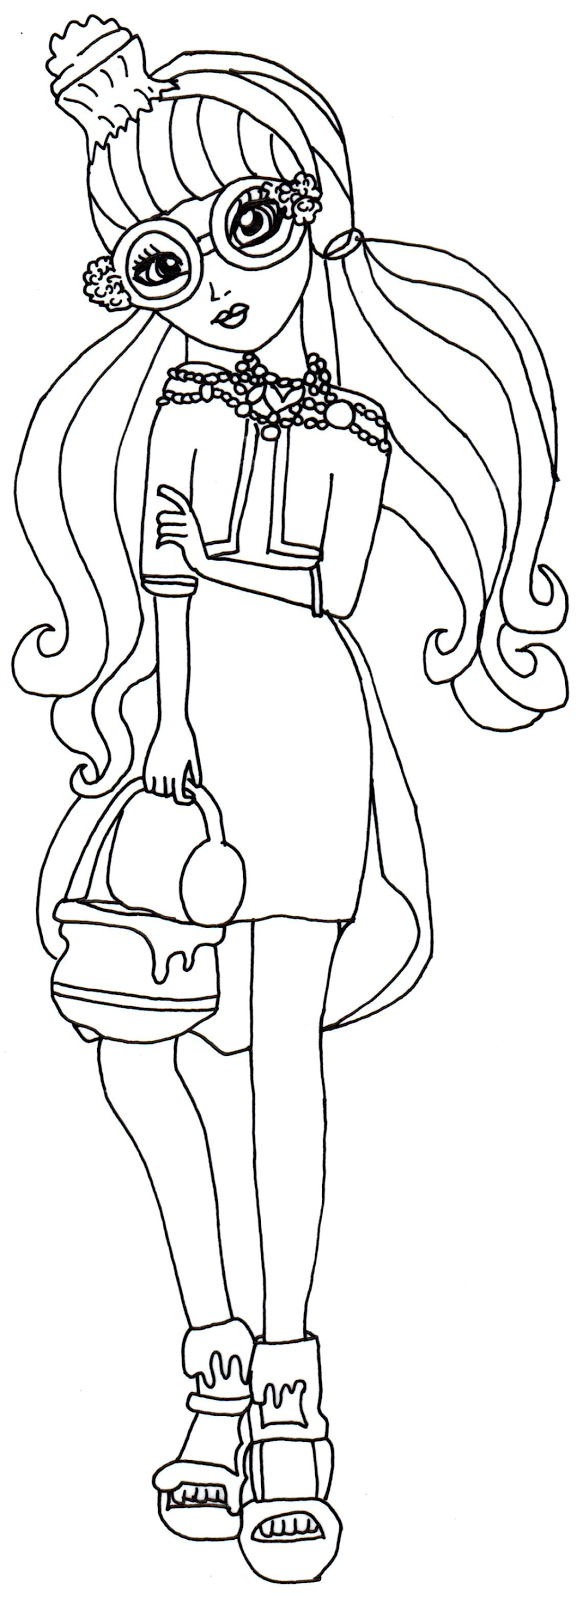 Ginger Desenho with desenho de ginger breadhouse de ever after high para colorir